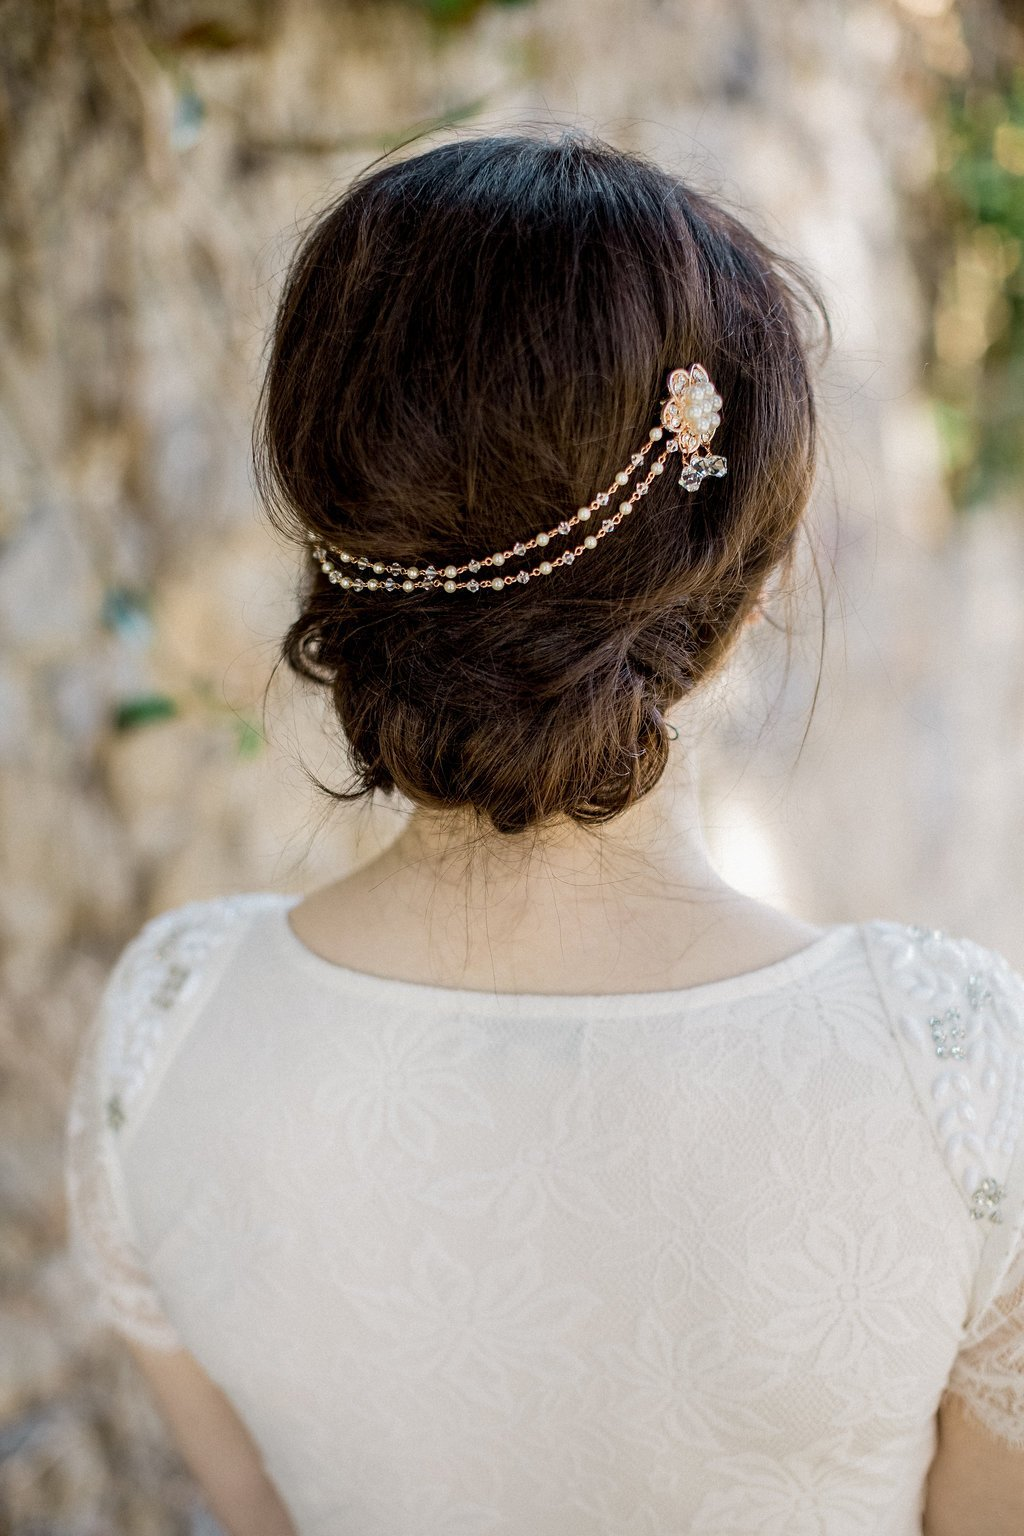 Rose Gold Draped Crystal & Pearl Hair Adornment, Venice